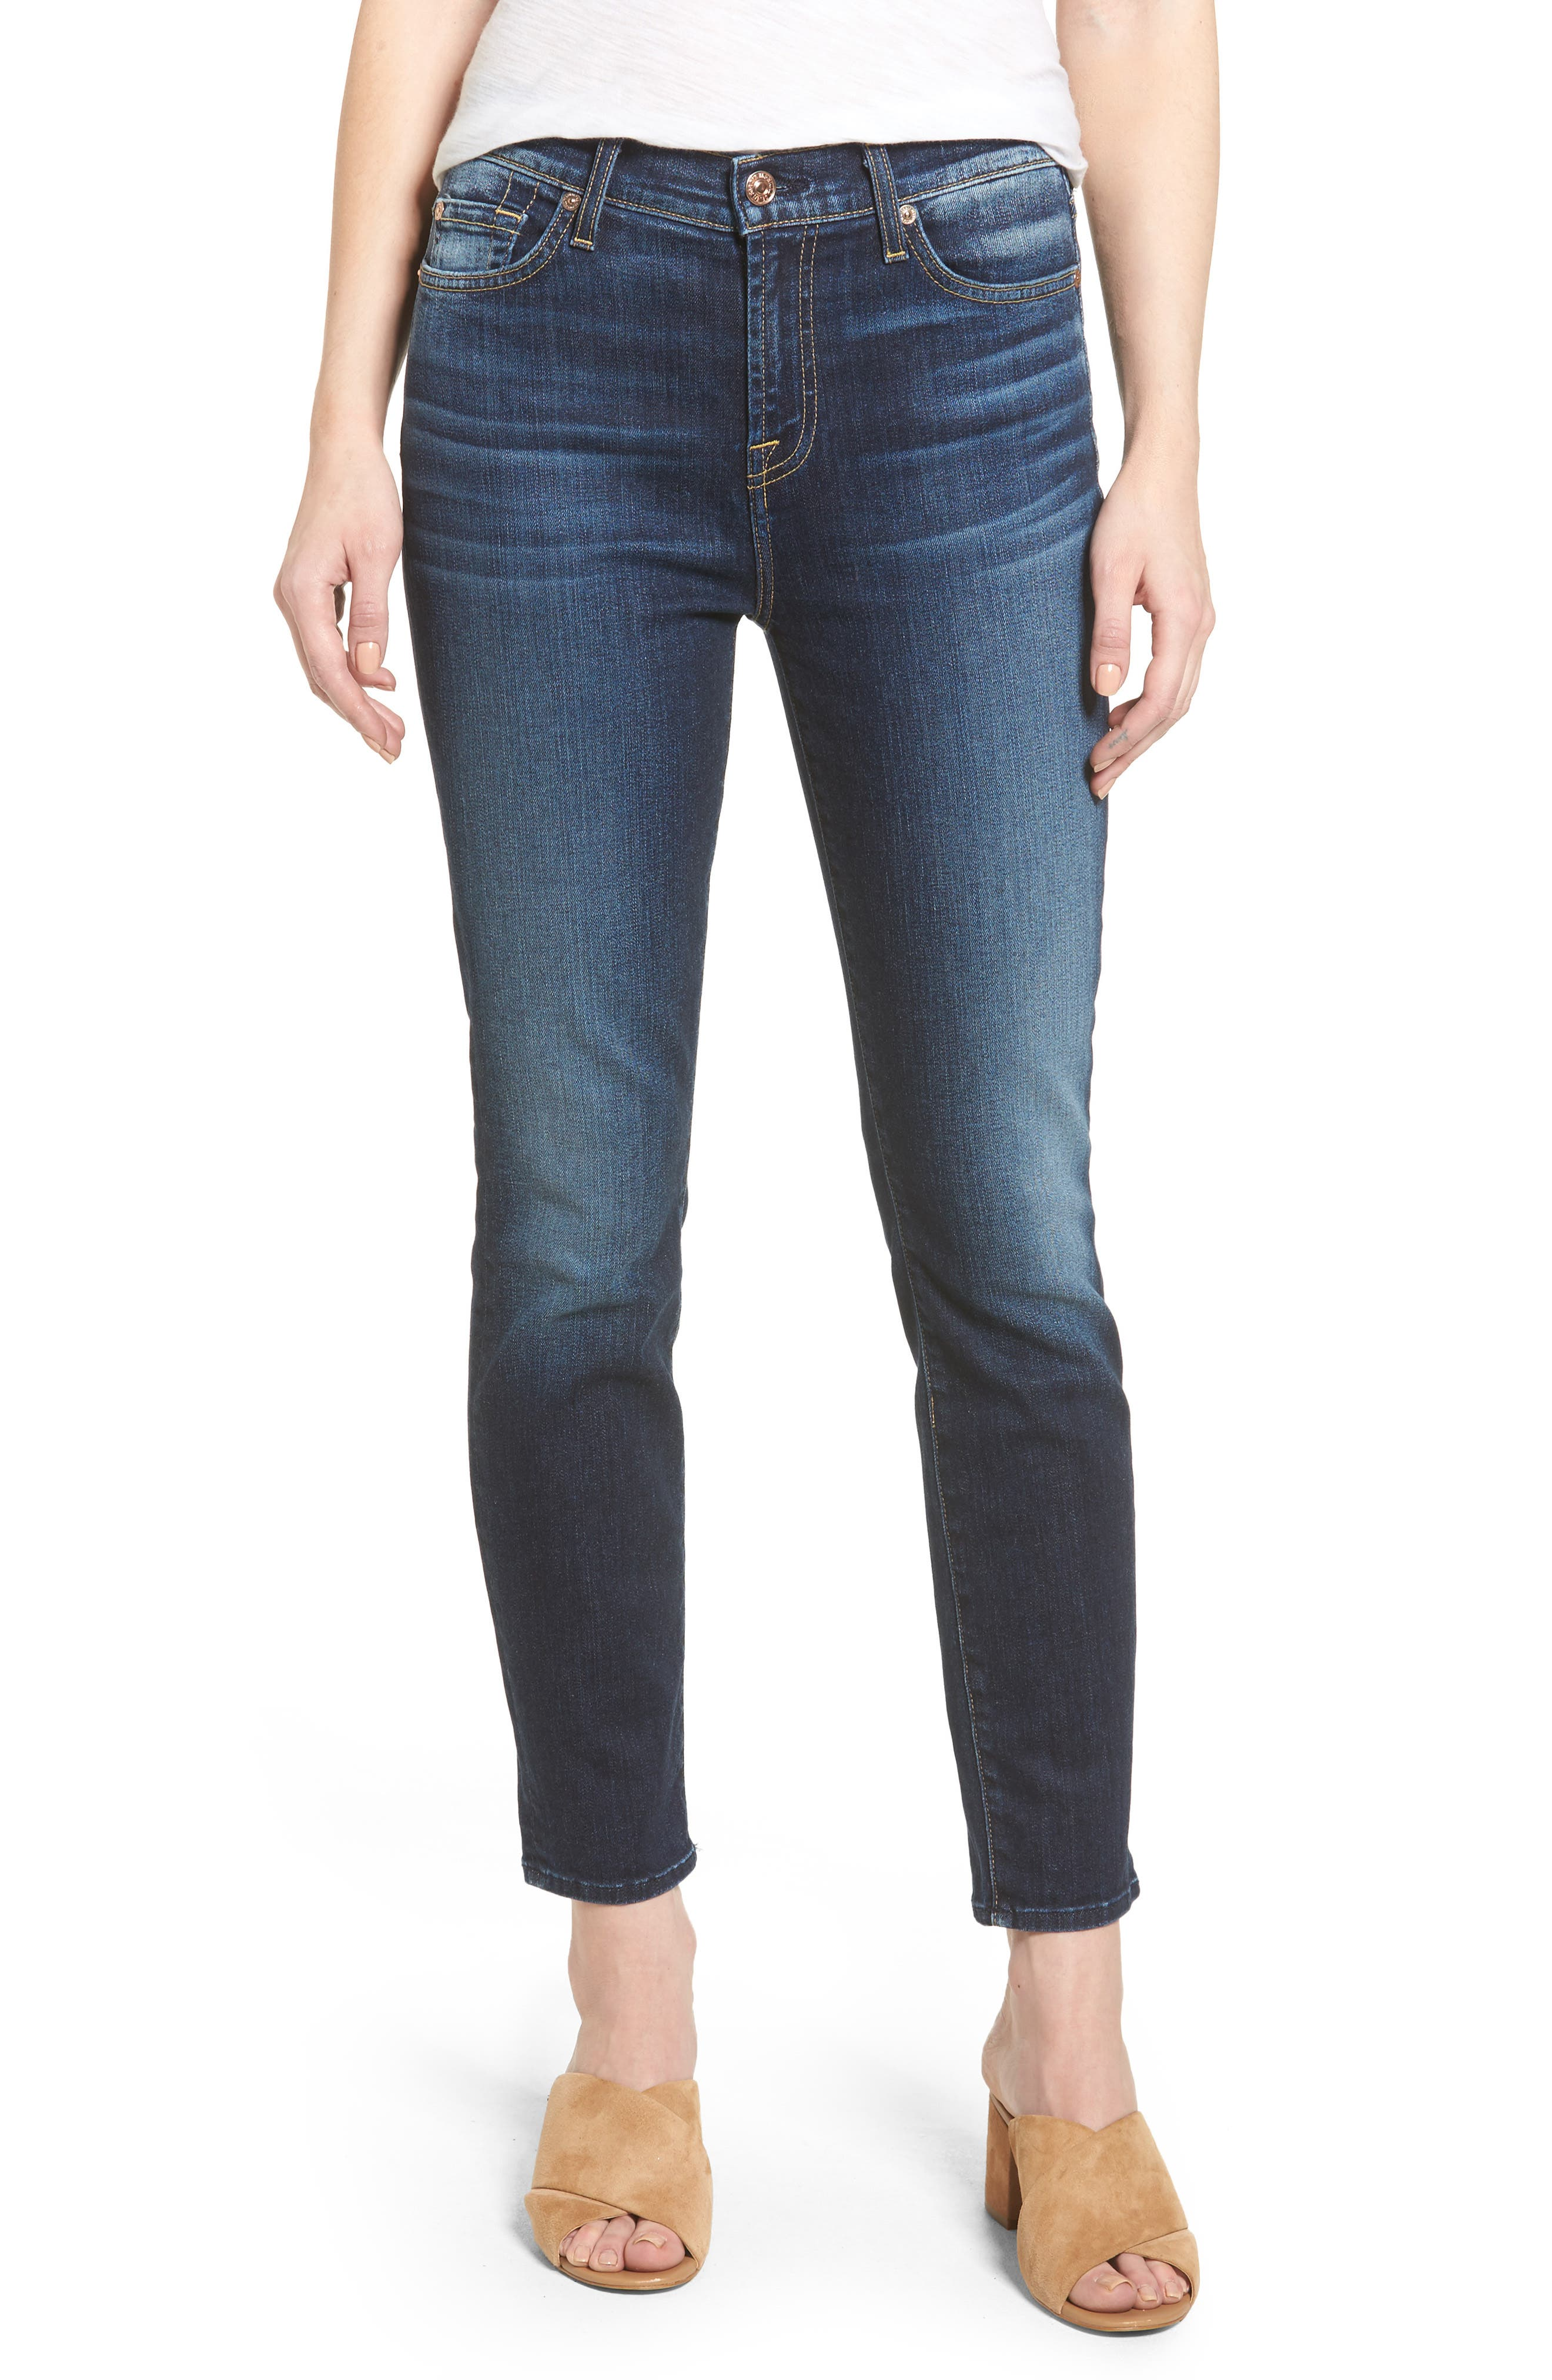 Alternate Image 1 Selected - Seven7 Roxanne High Waist Ankle Jeans (Aggressive Madison Ave)